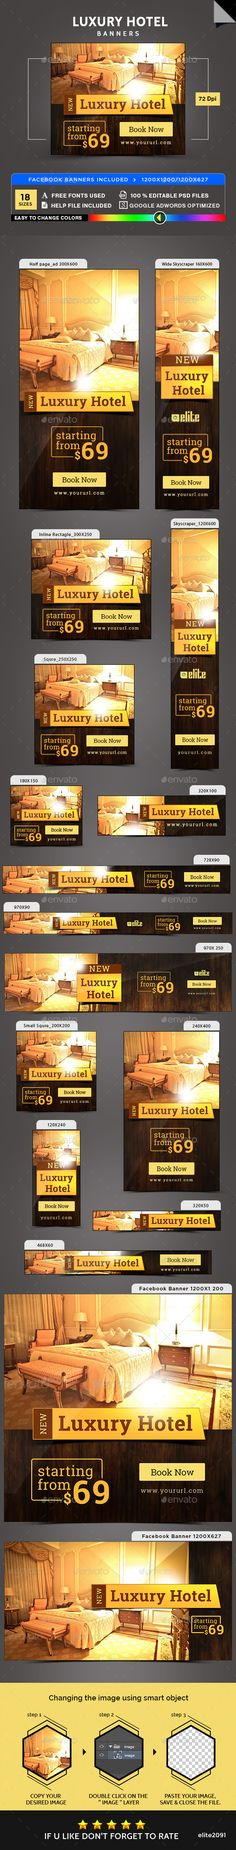 Luxury Hotel Banners - Banners & Ads Web Elements Download here : https://graphicriver.net/item/luxury-hotel-banners/19279260?s_rank=62&ref=Al-fatih